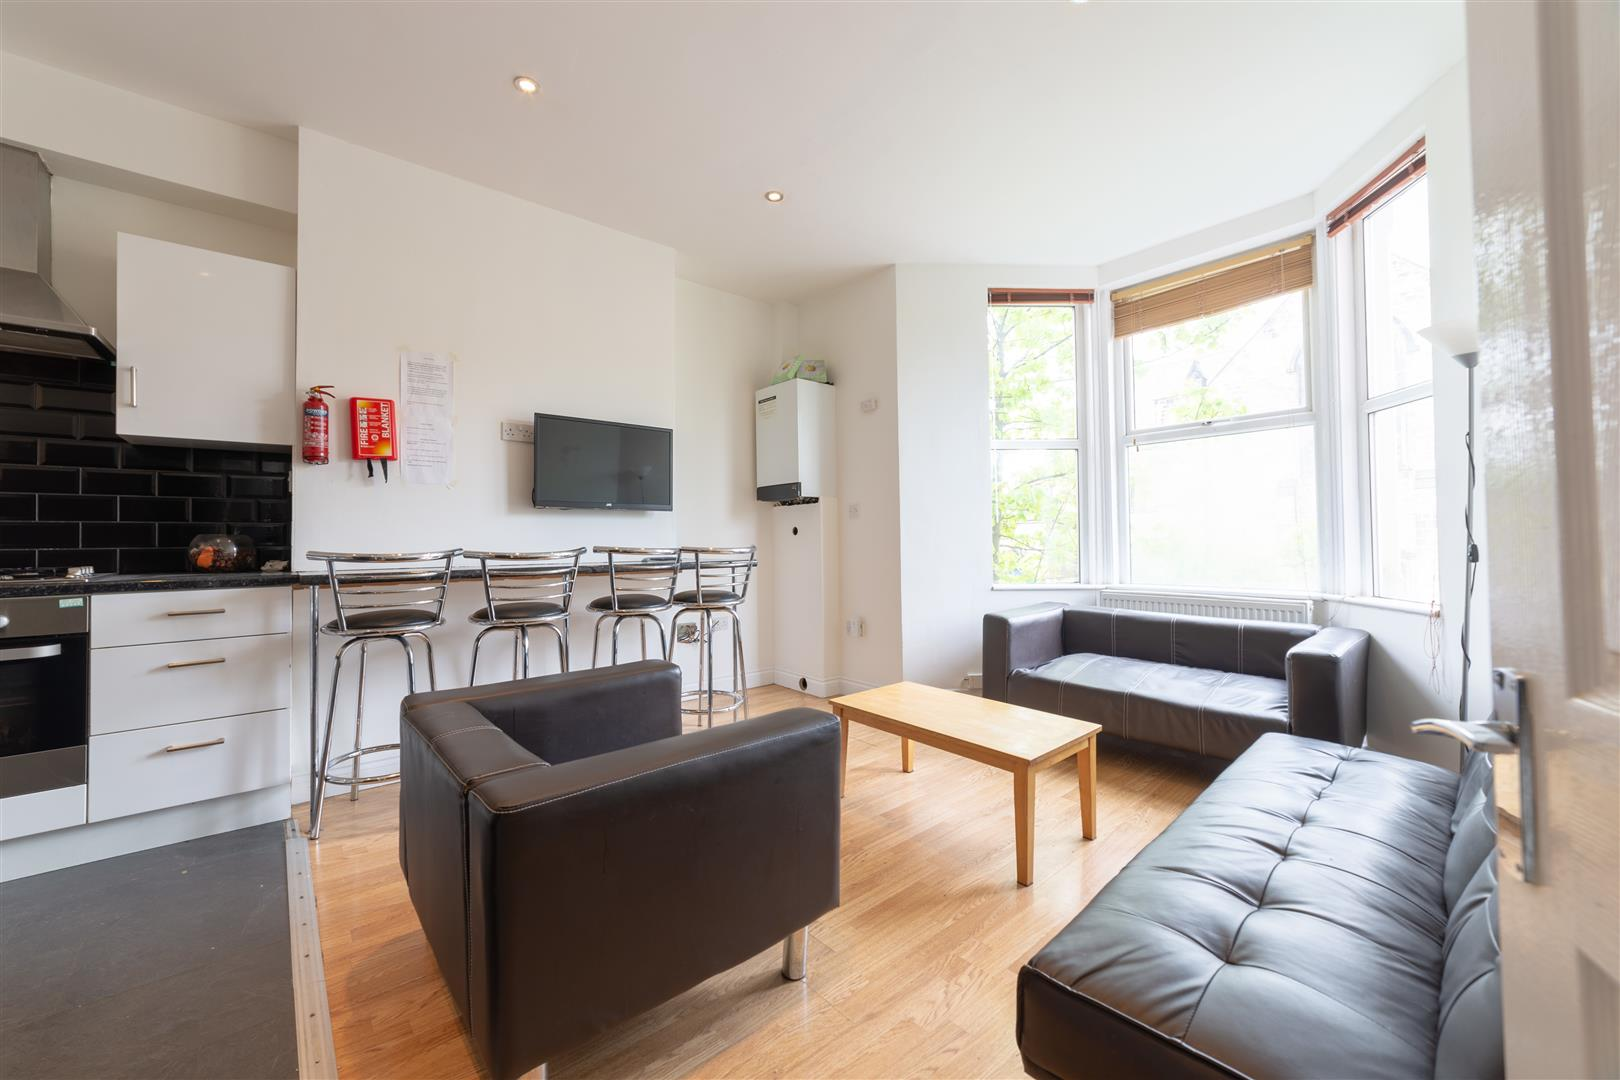 6 bed apartment to rent in Newcastle Upon Tyne, NE6 5JX 0